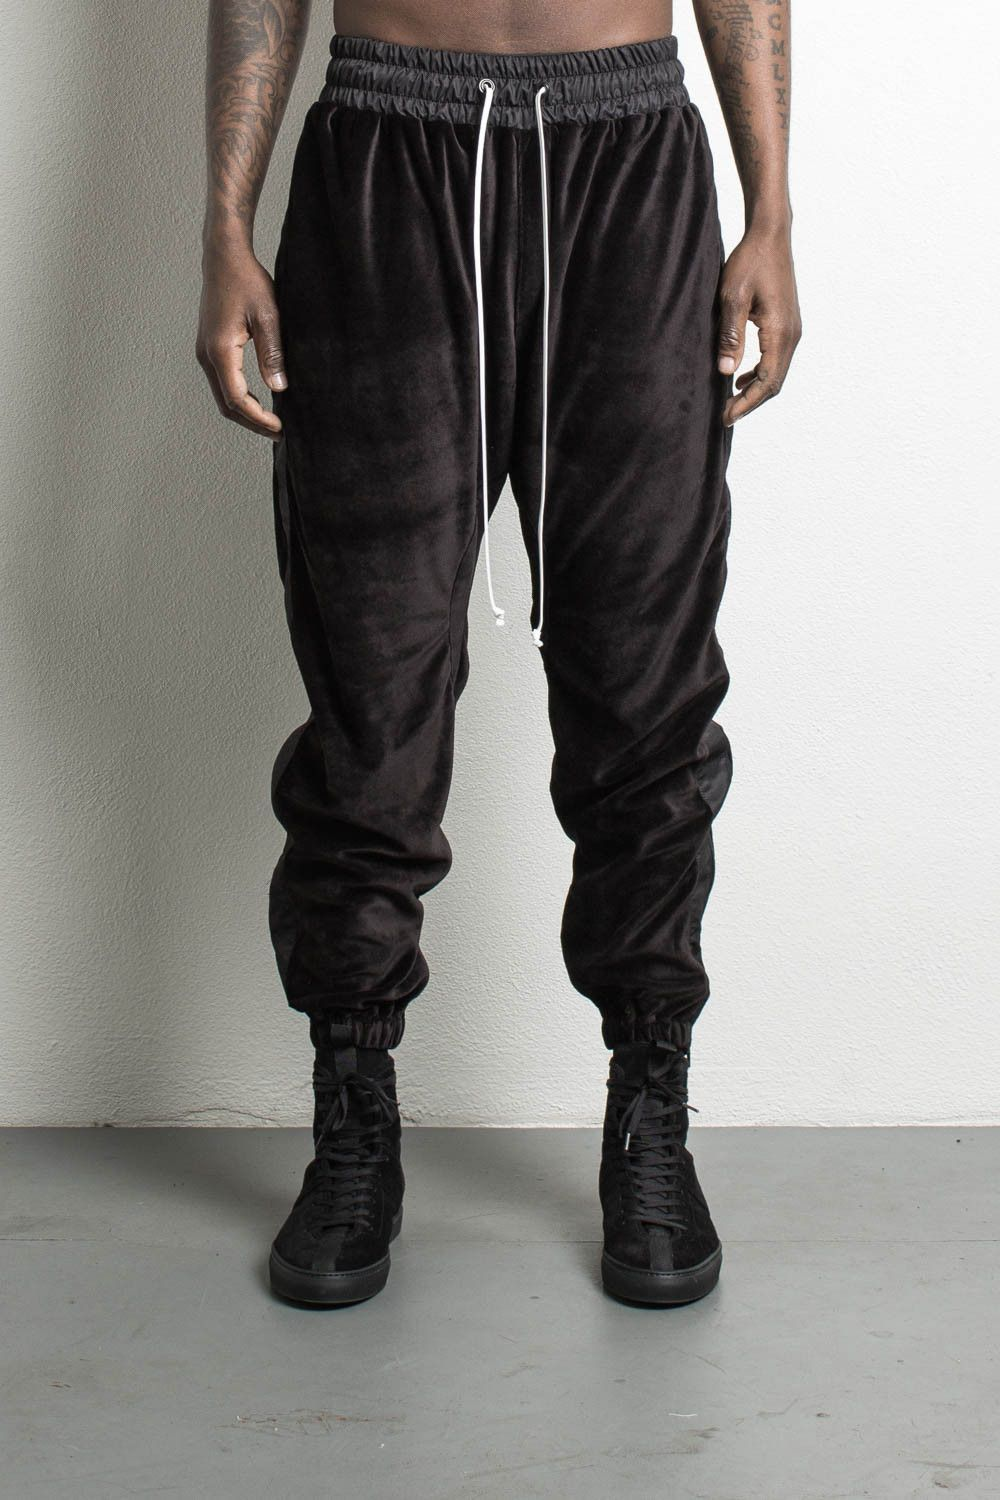 Parachute Track Pant Velour Black Velour Mens Streetwear Designer Sportswear Urban Outfits